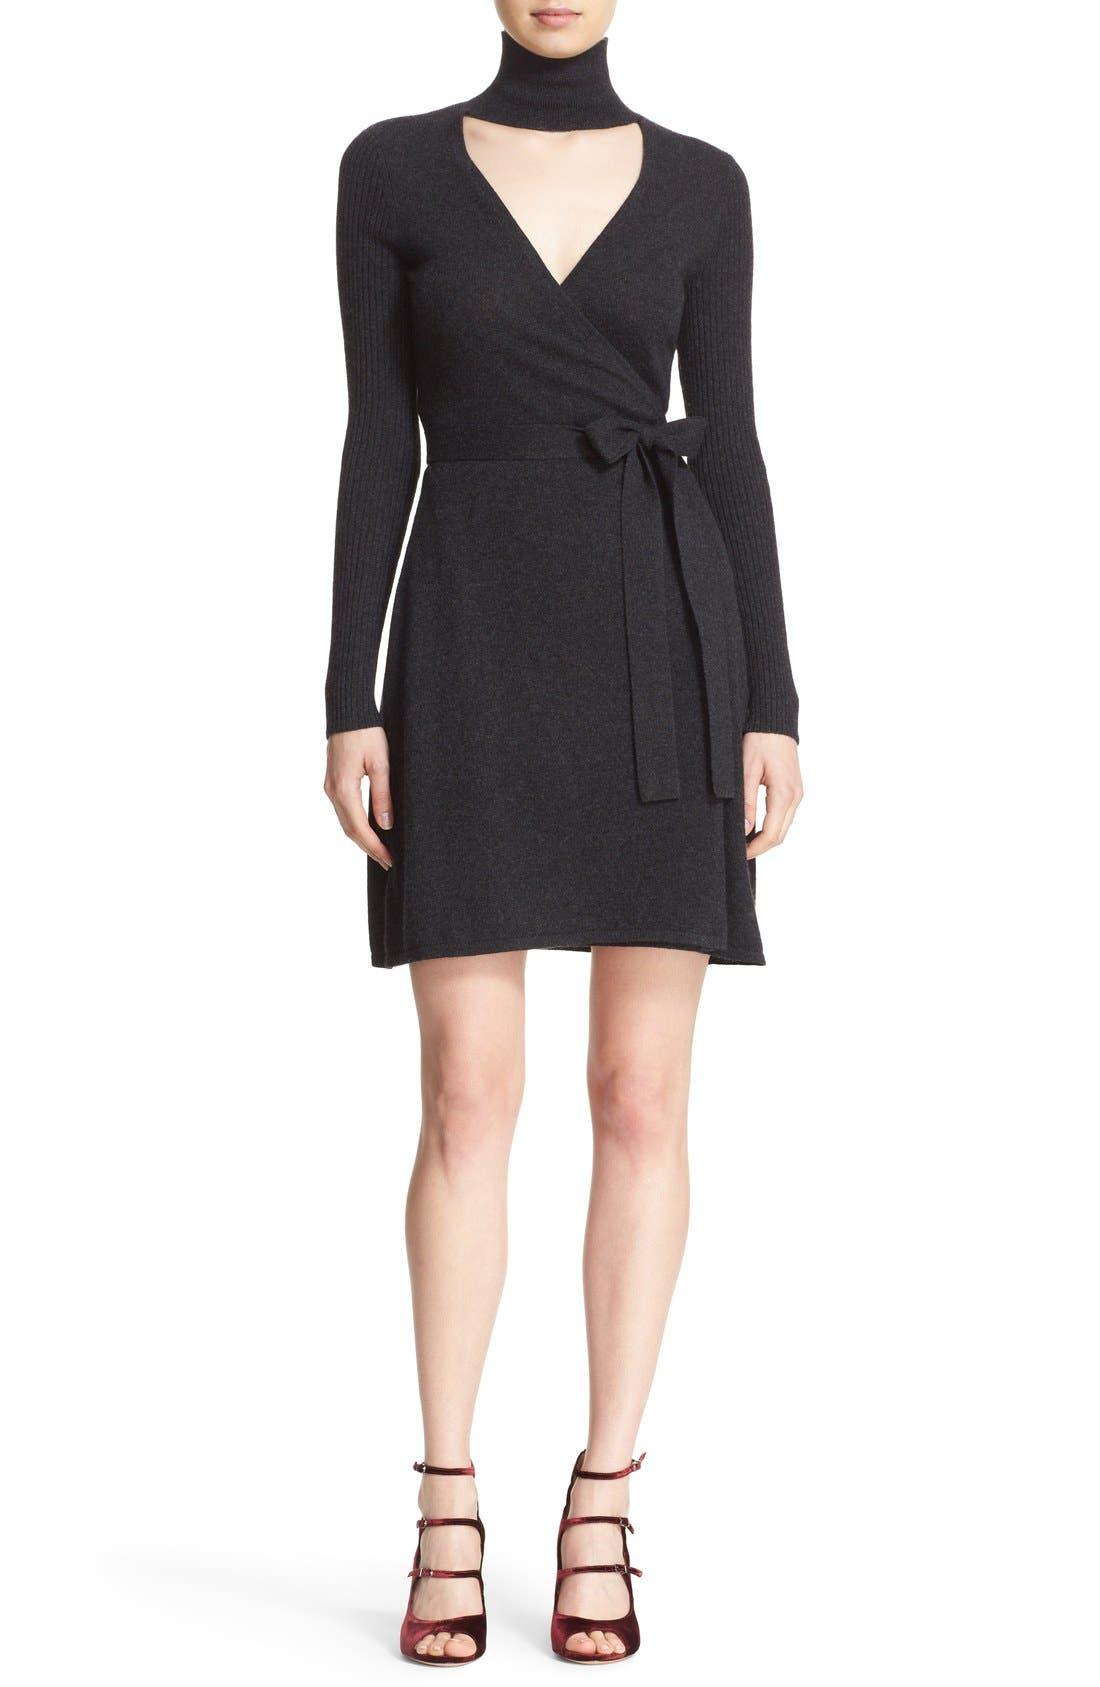 Alternate Image 1 Selected - Diane von Furstenberg 'Janeva' Wool & Cashmere Wrap Dress